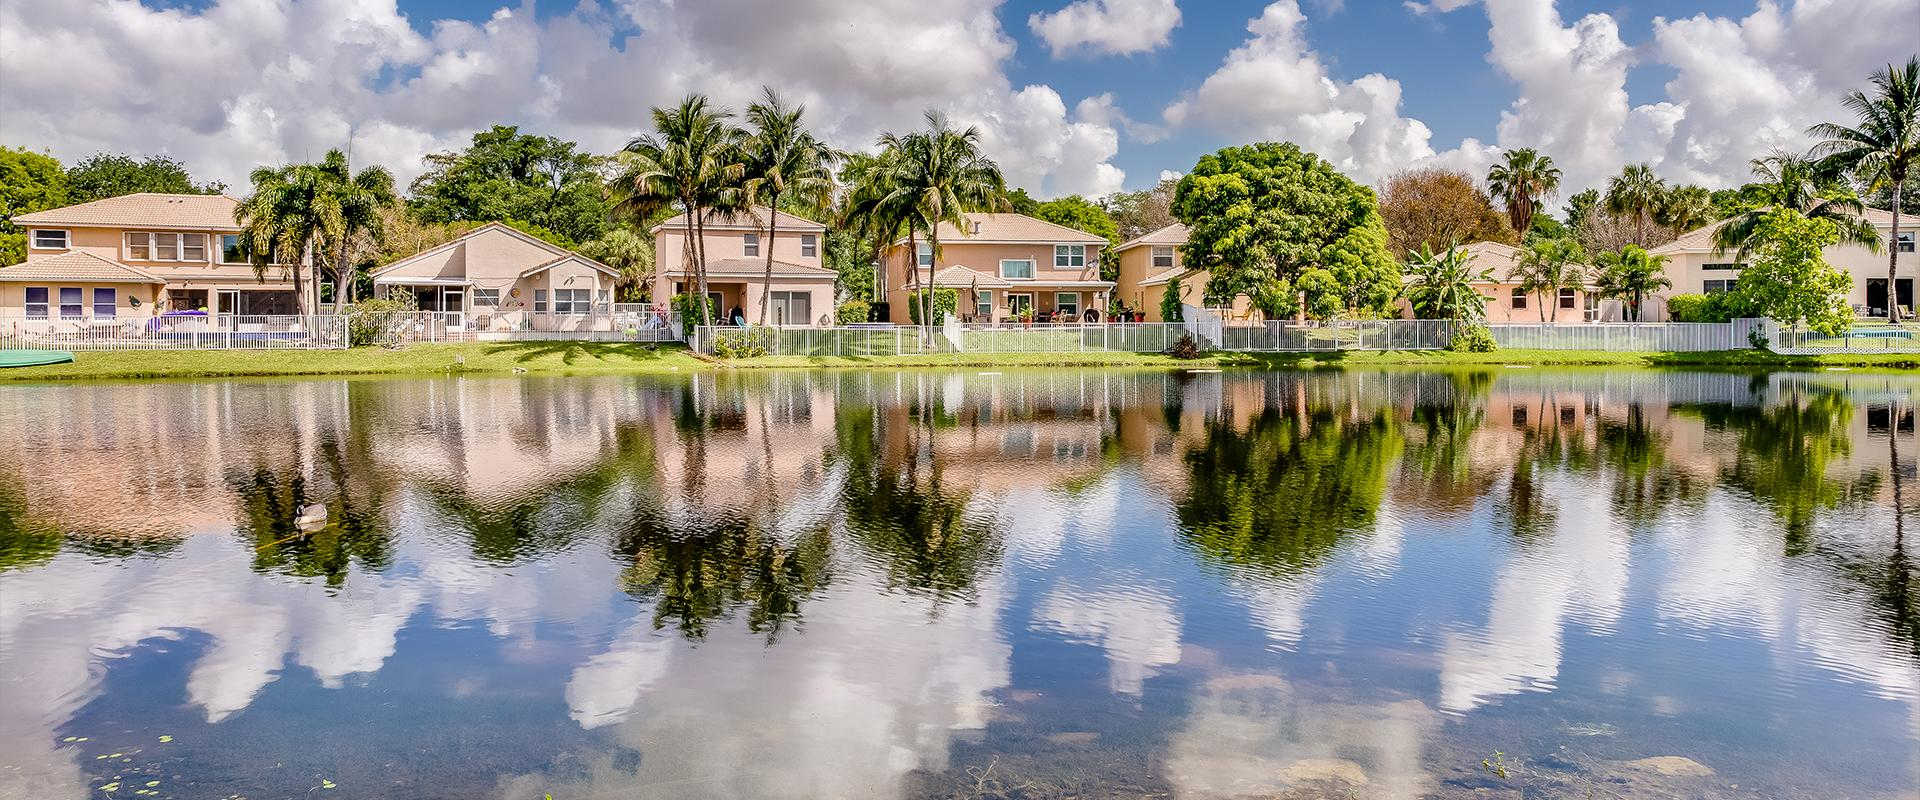 houses in florida